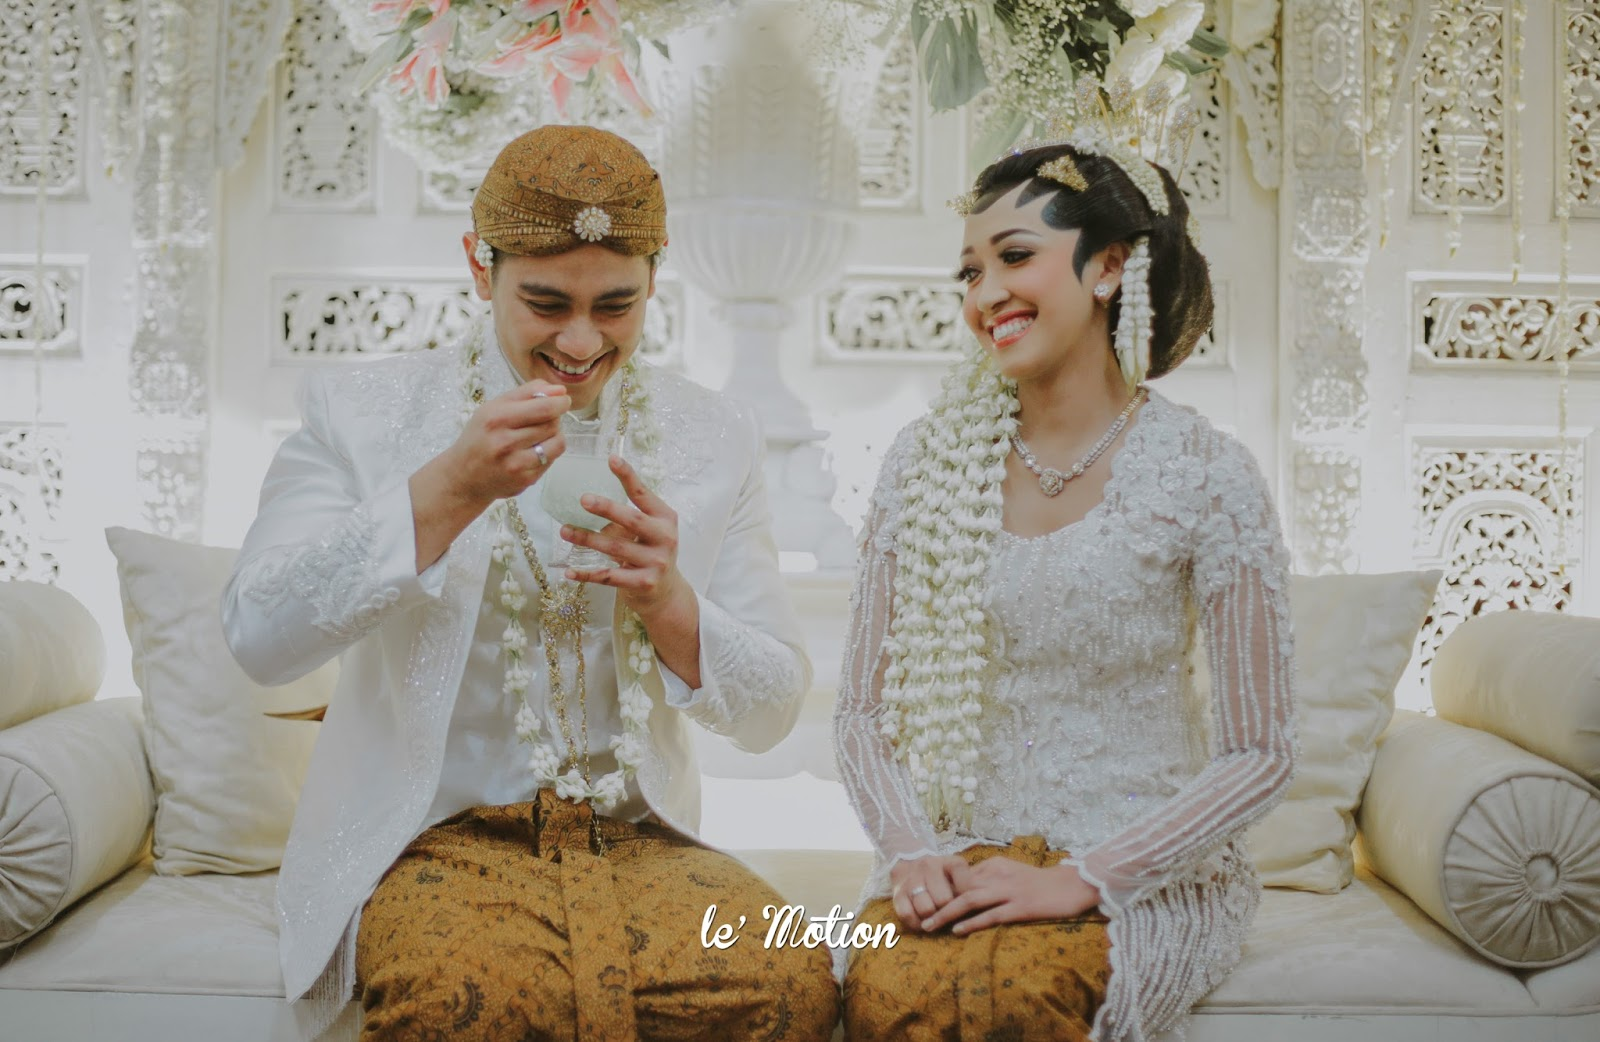 Anila danish wedding